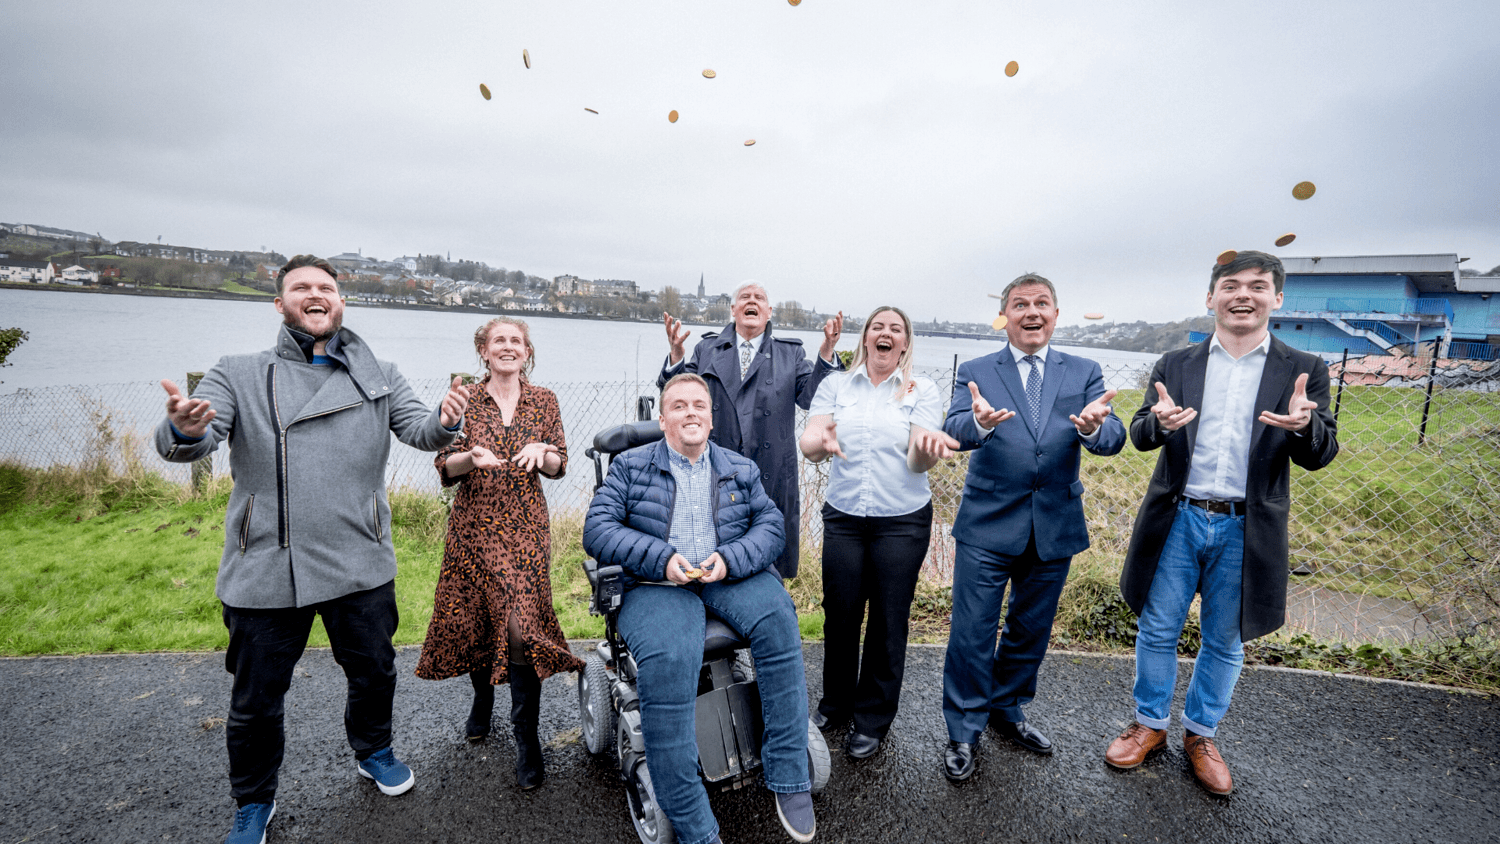 Five Northern Ireland mental health charities benefit from partnership between the Institute of Directors and the Community Foundation.